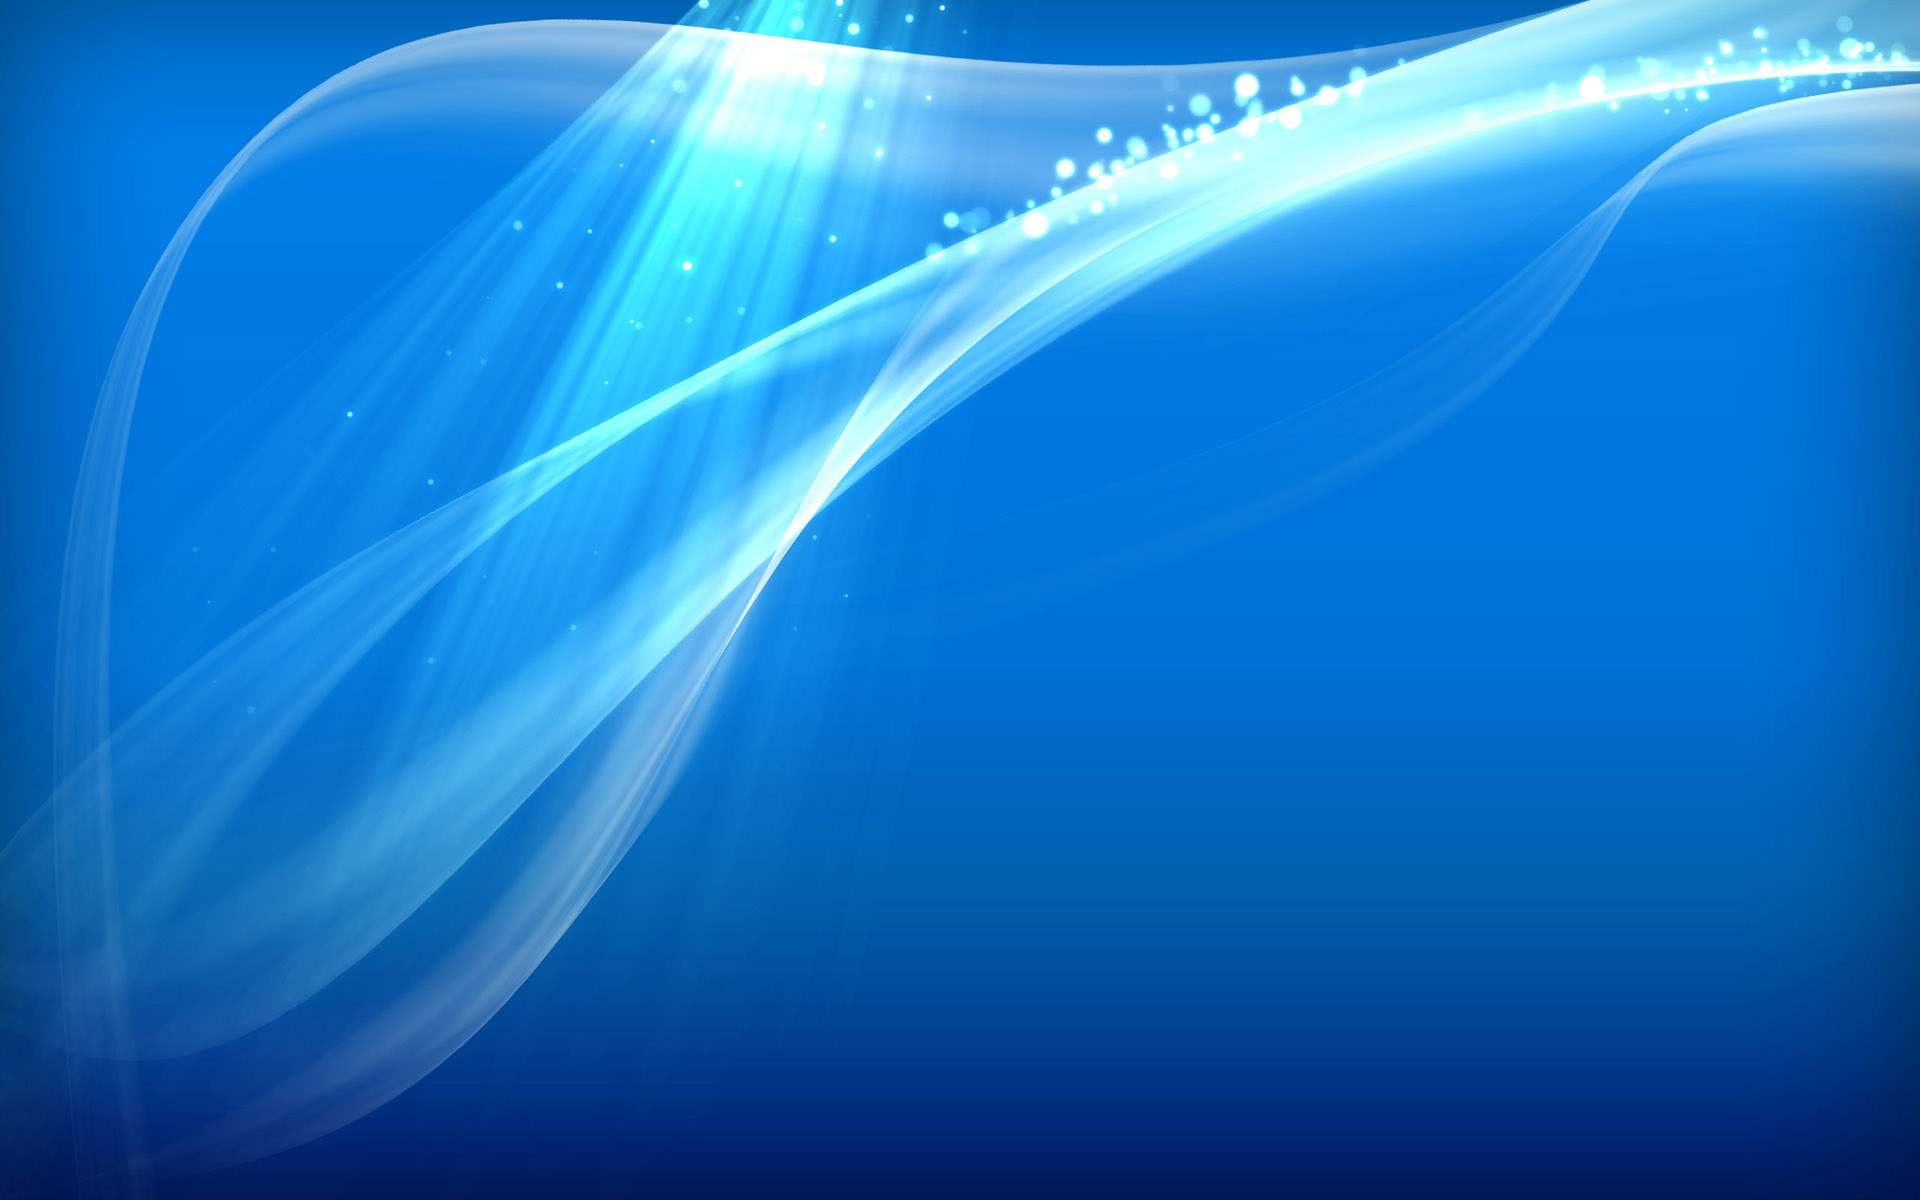 Related Pictures hd wallpaper abstract blue background vector graphic 1920x1200